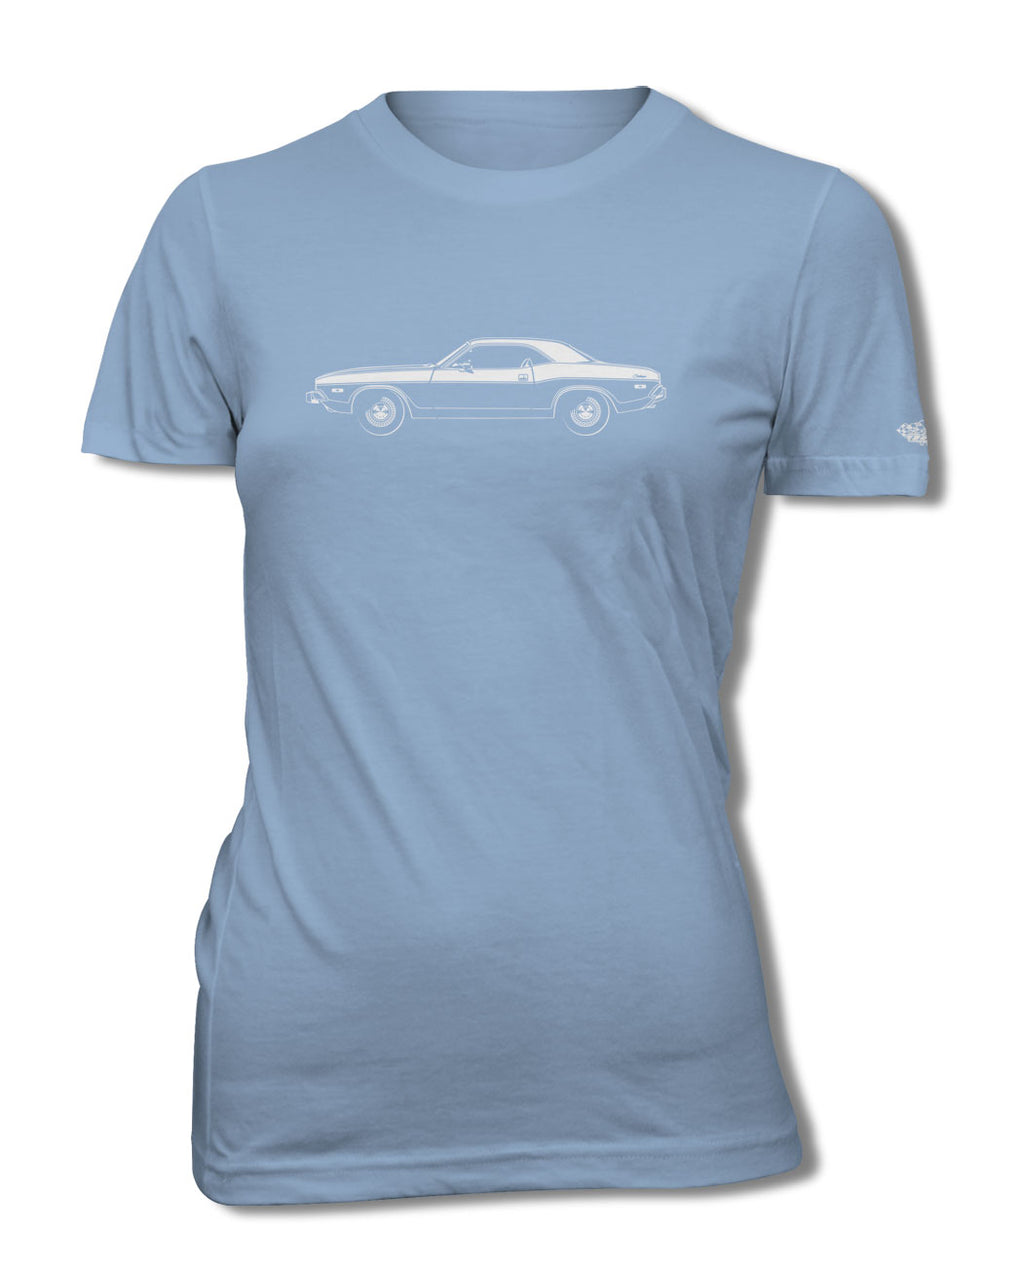 1974 Dodge Challenger Base Coupe T-Shirt - Women - Side View